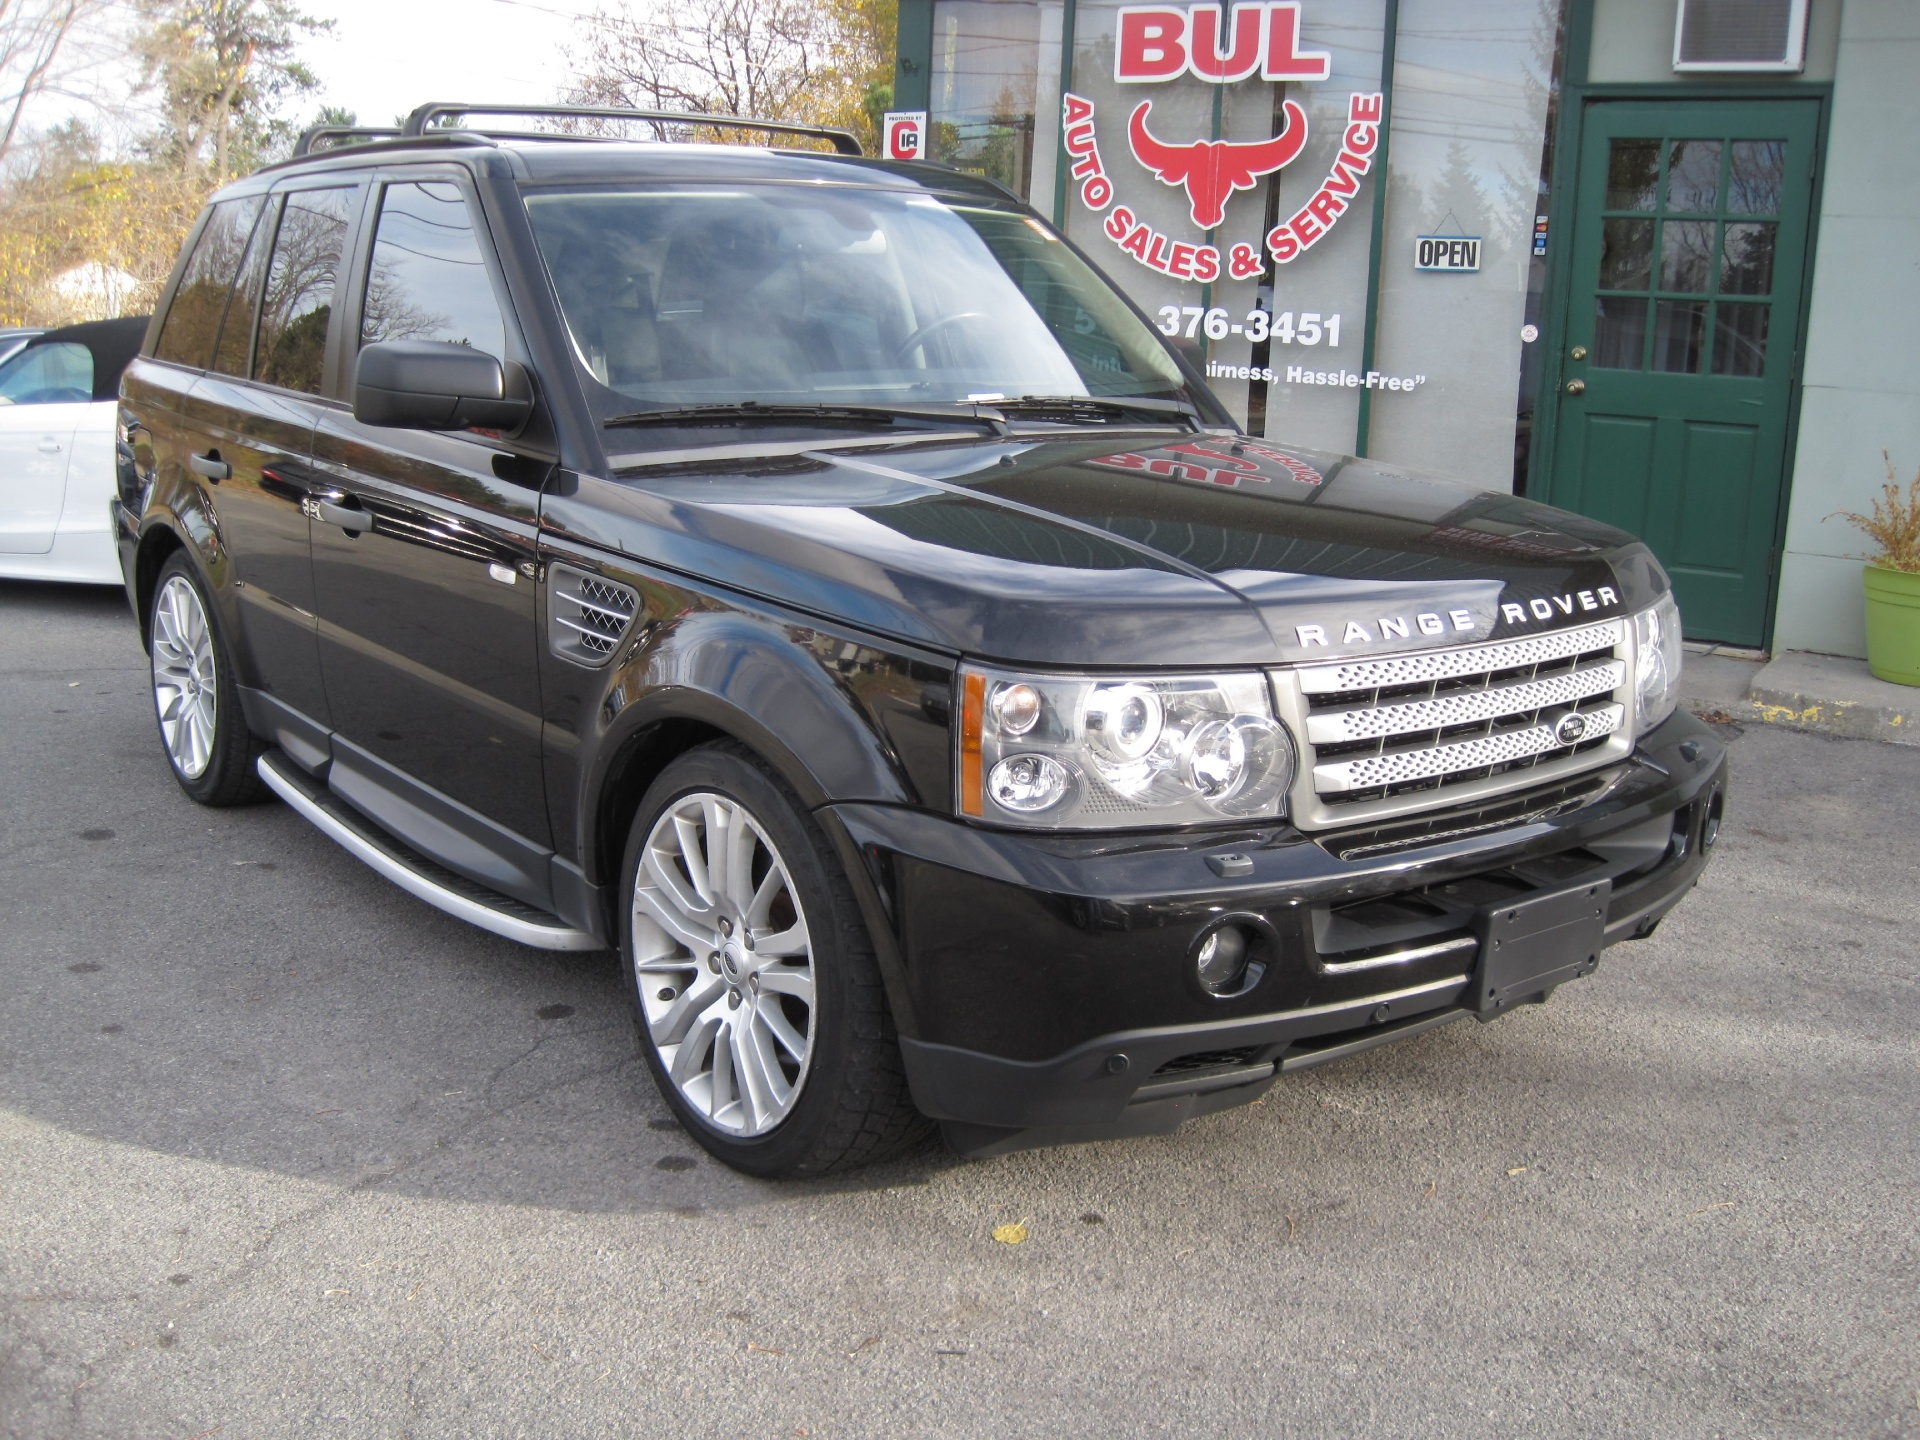 2009 Land Rover Range Rover Sport Supercharged VERY CLEAN INSIDE